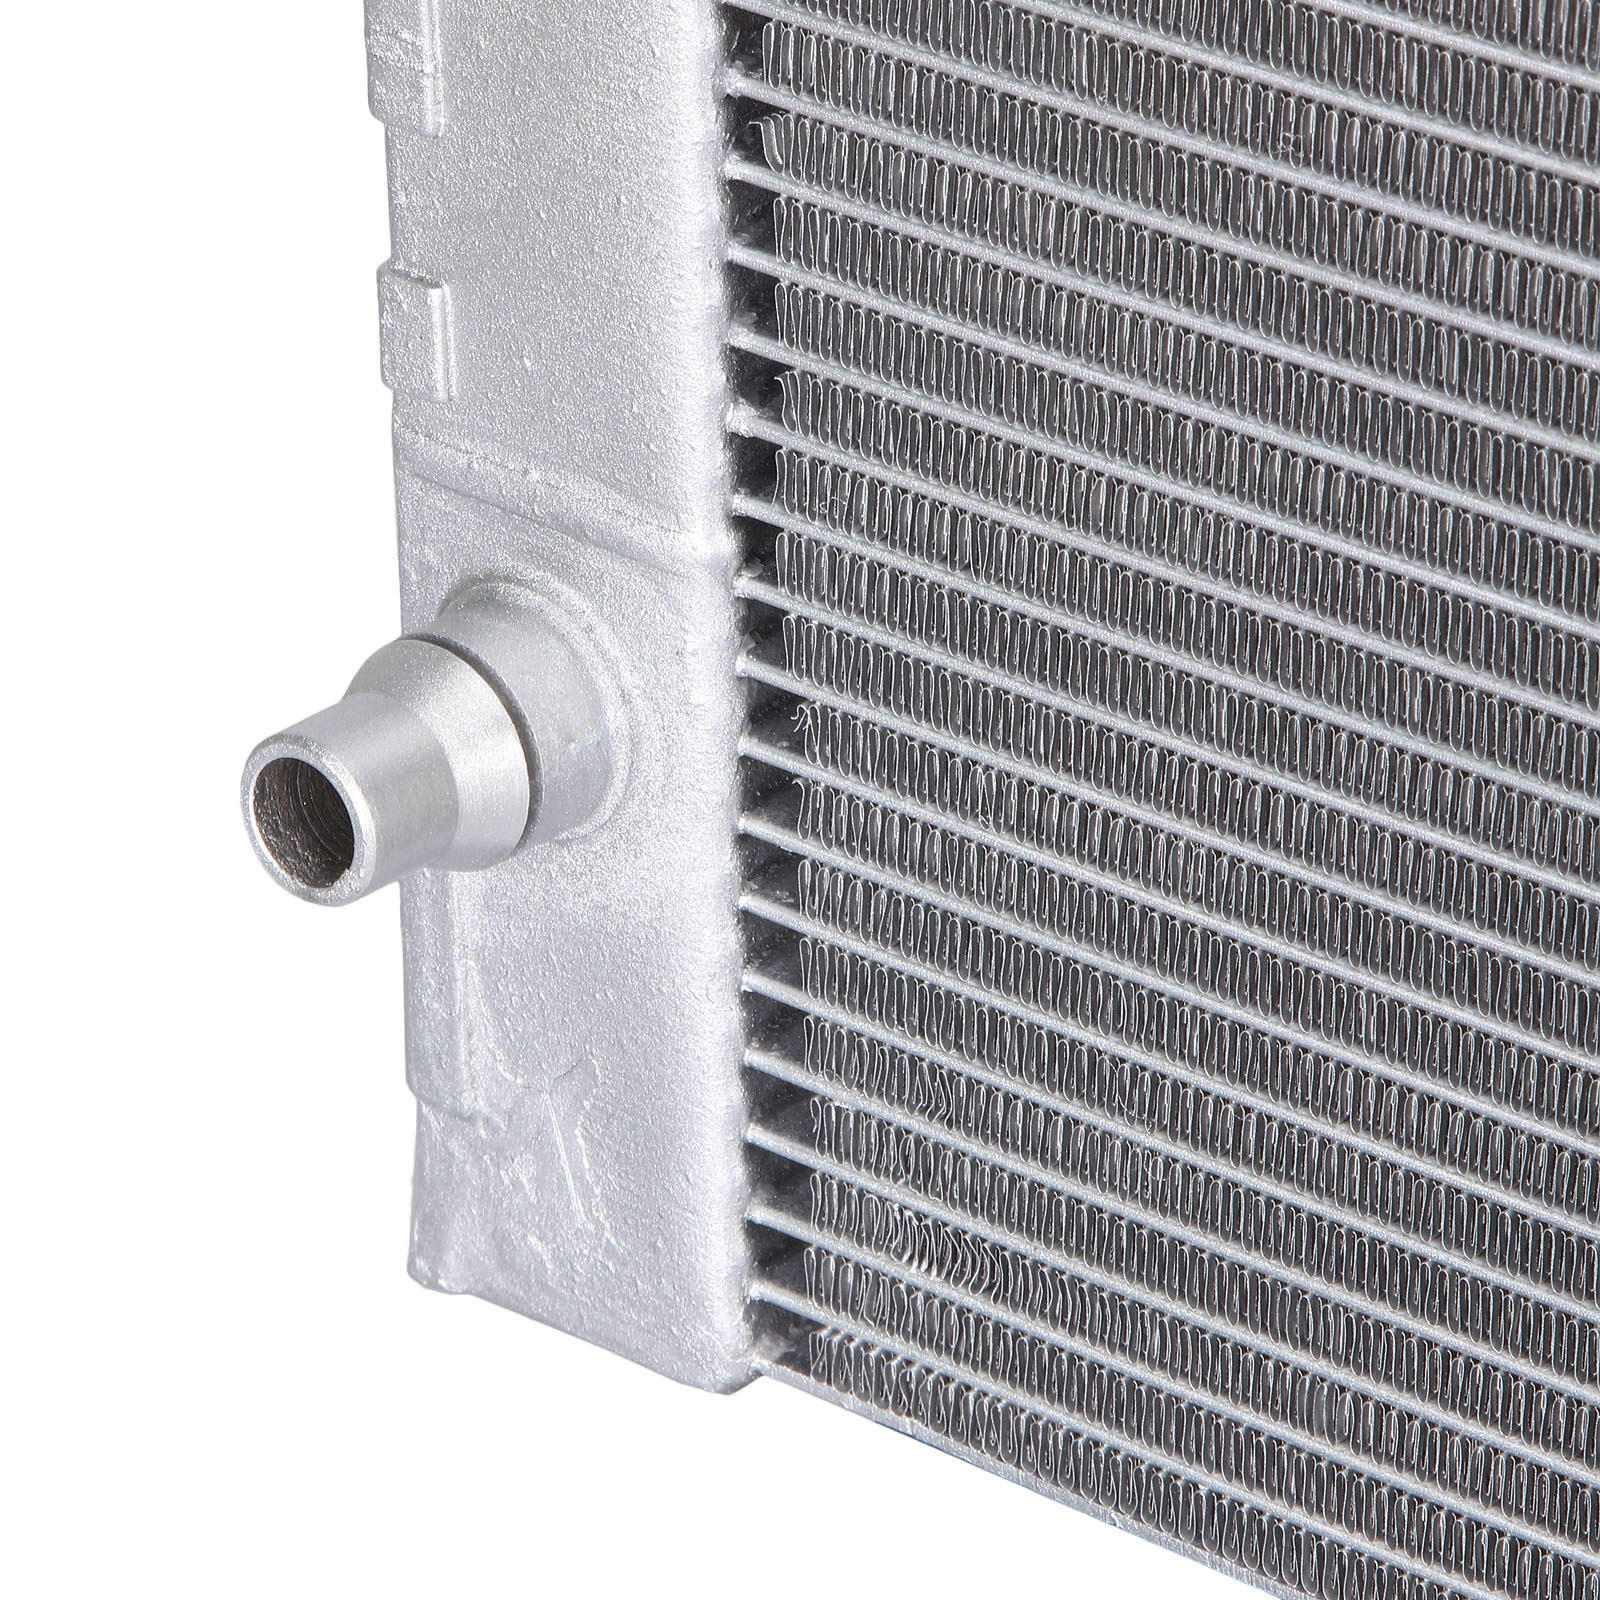 New Full Aluminum Radiator for BMW X5 E70 3.0 SI MT 2007-2010 OEM 17117585035